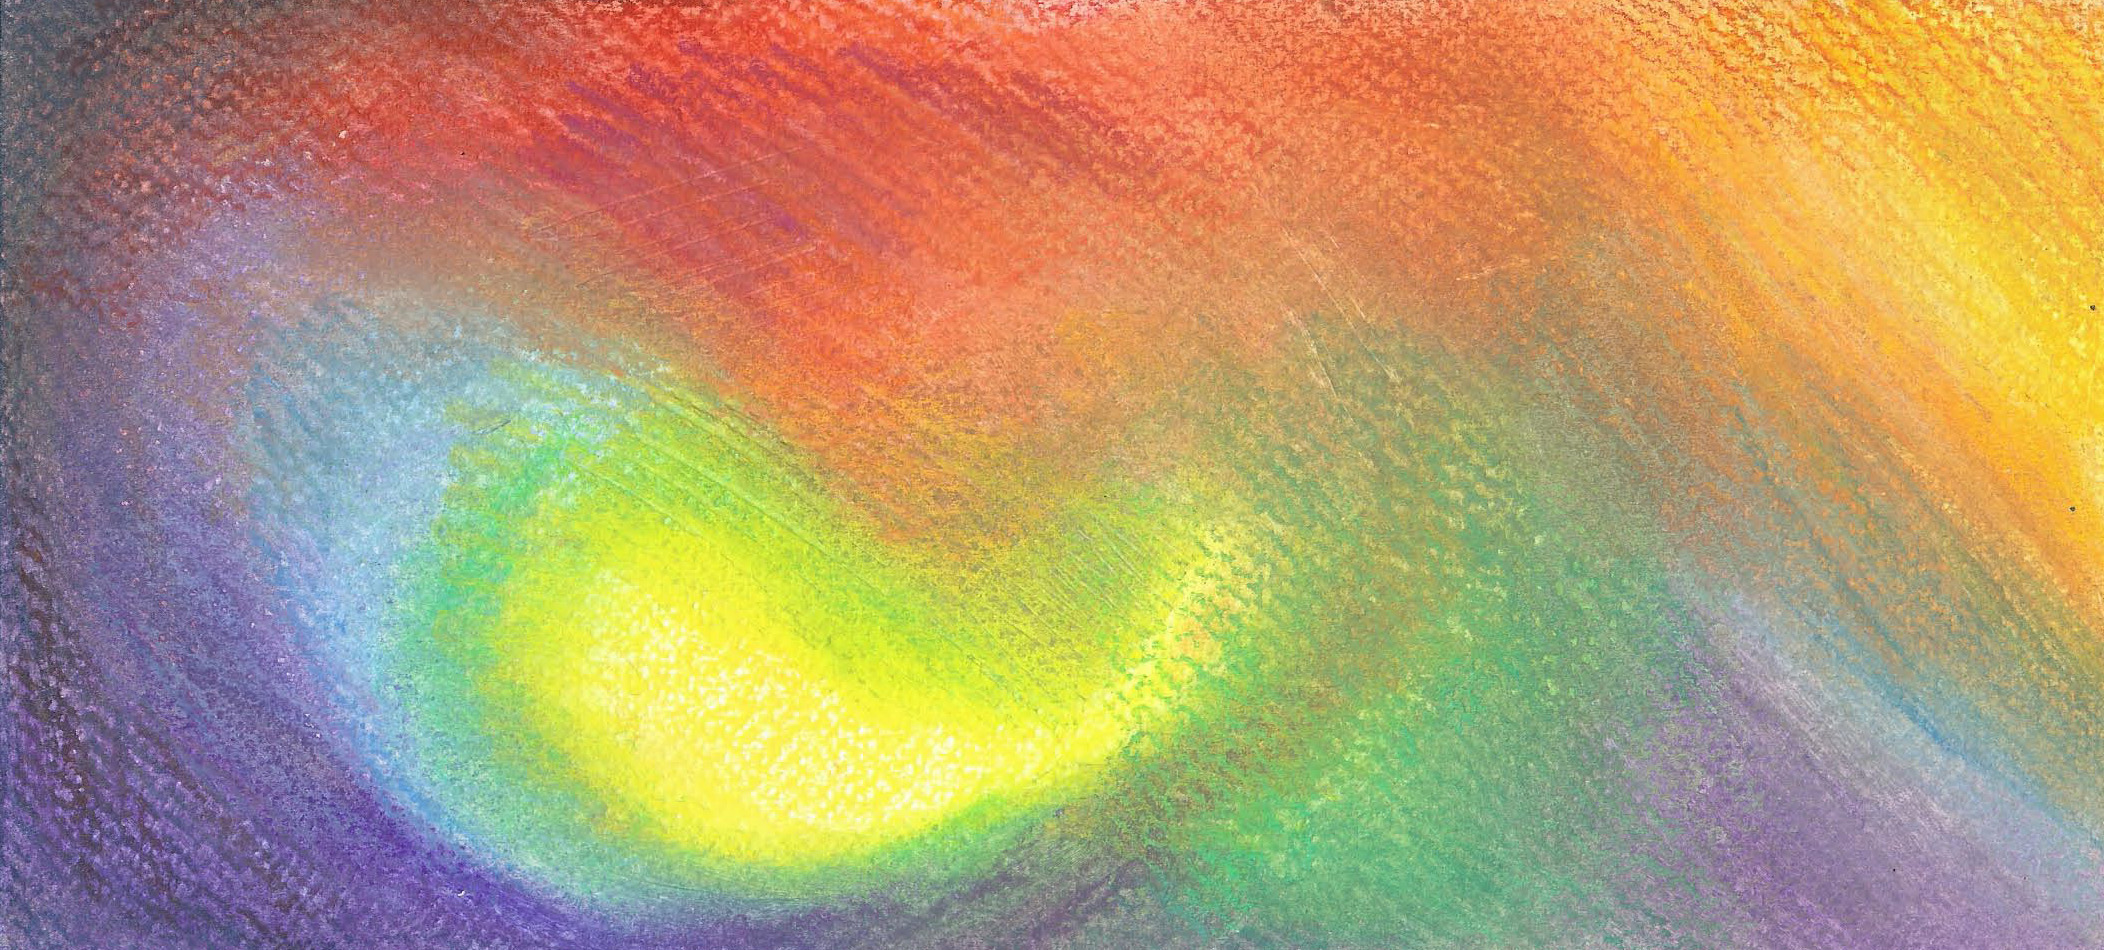 Cradled Light - Colored Pencil - 5 X 10 - $100